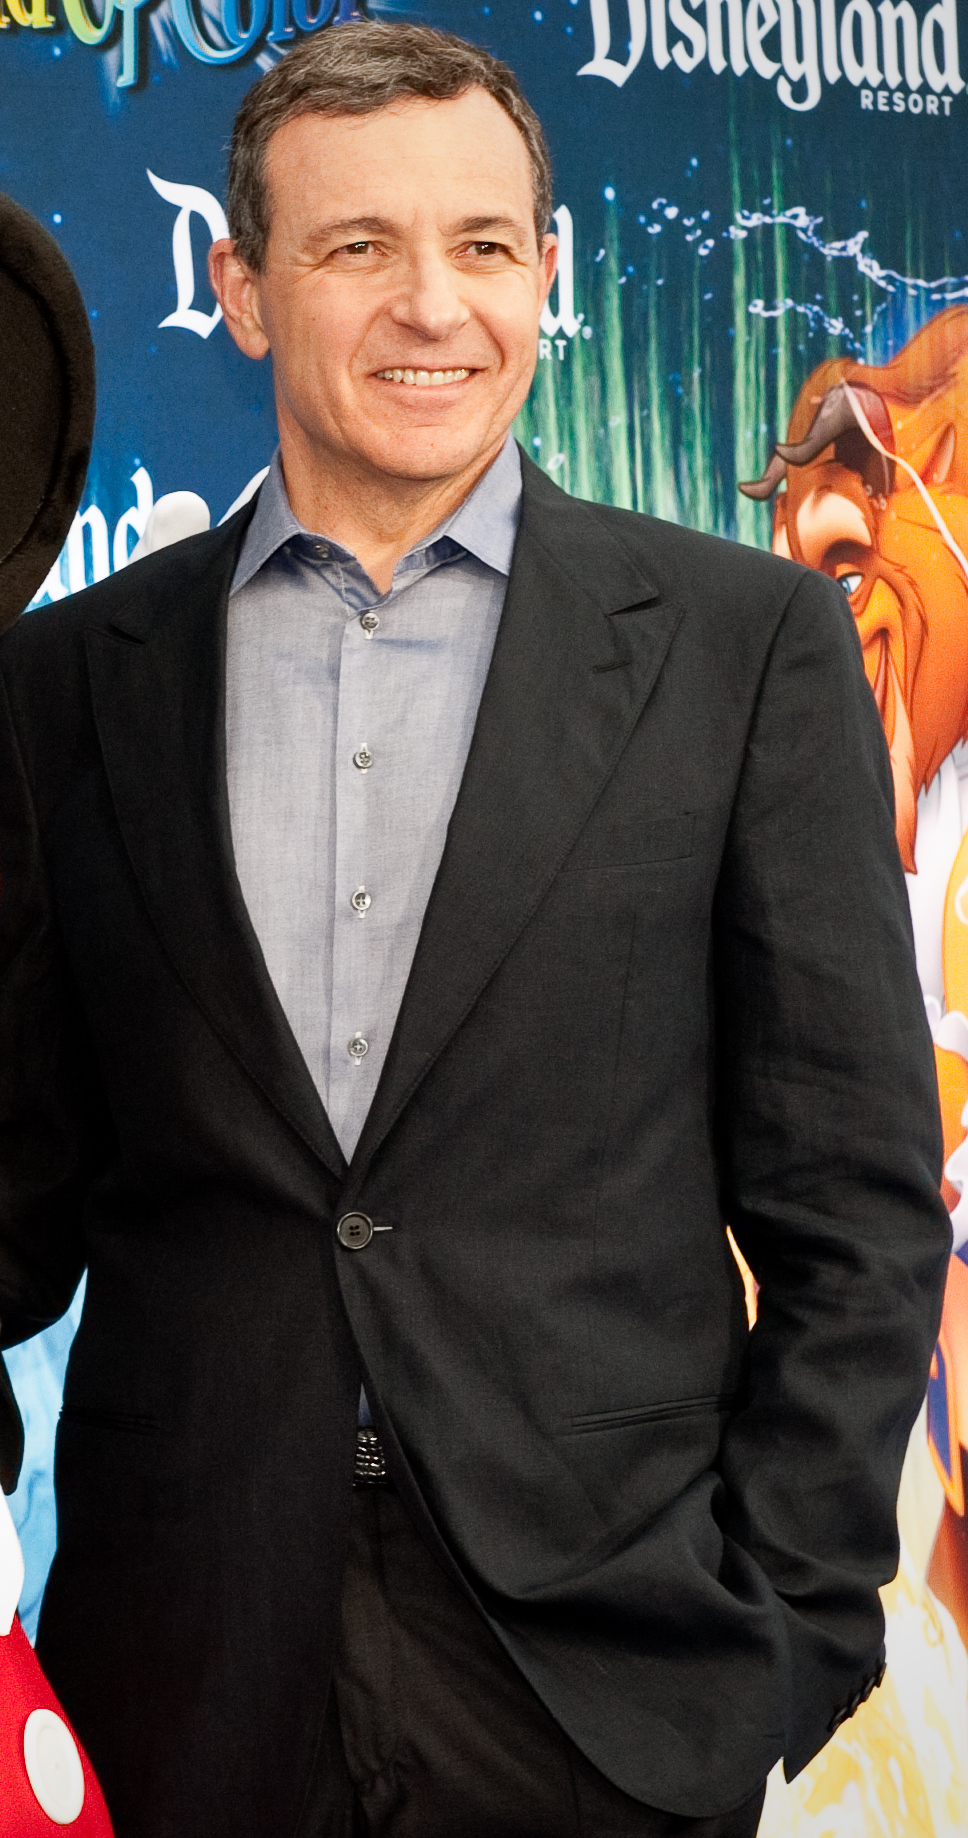 File:Bob Iger crop.jpg - Wikipedia, the free encyclopedia